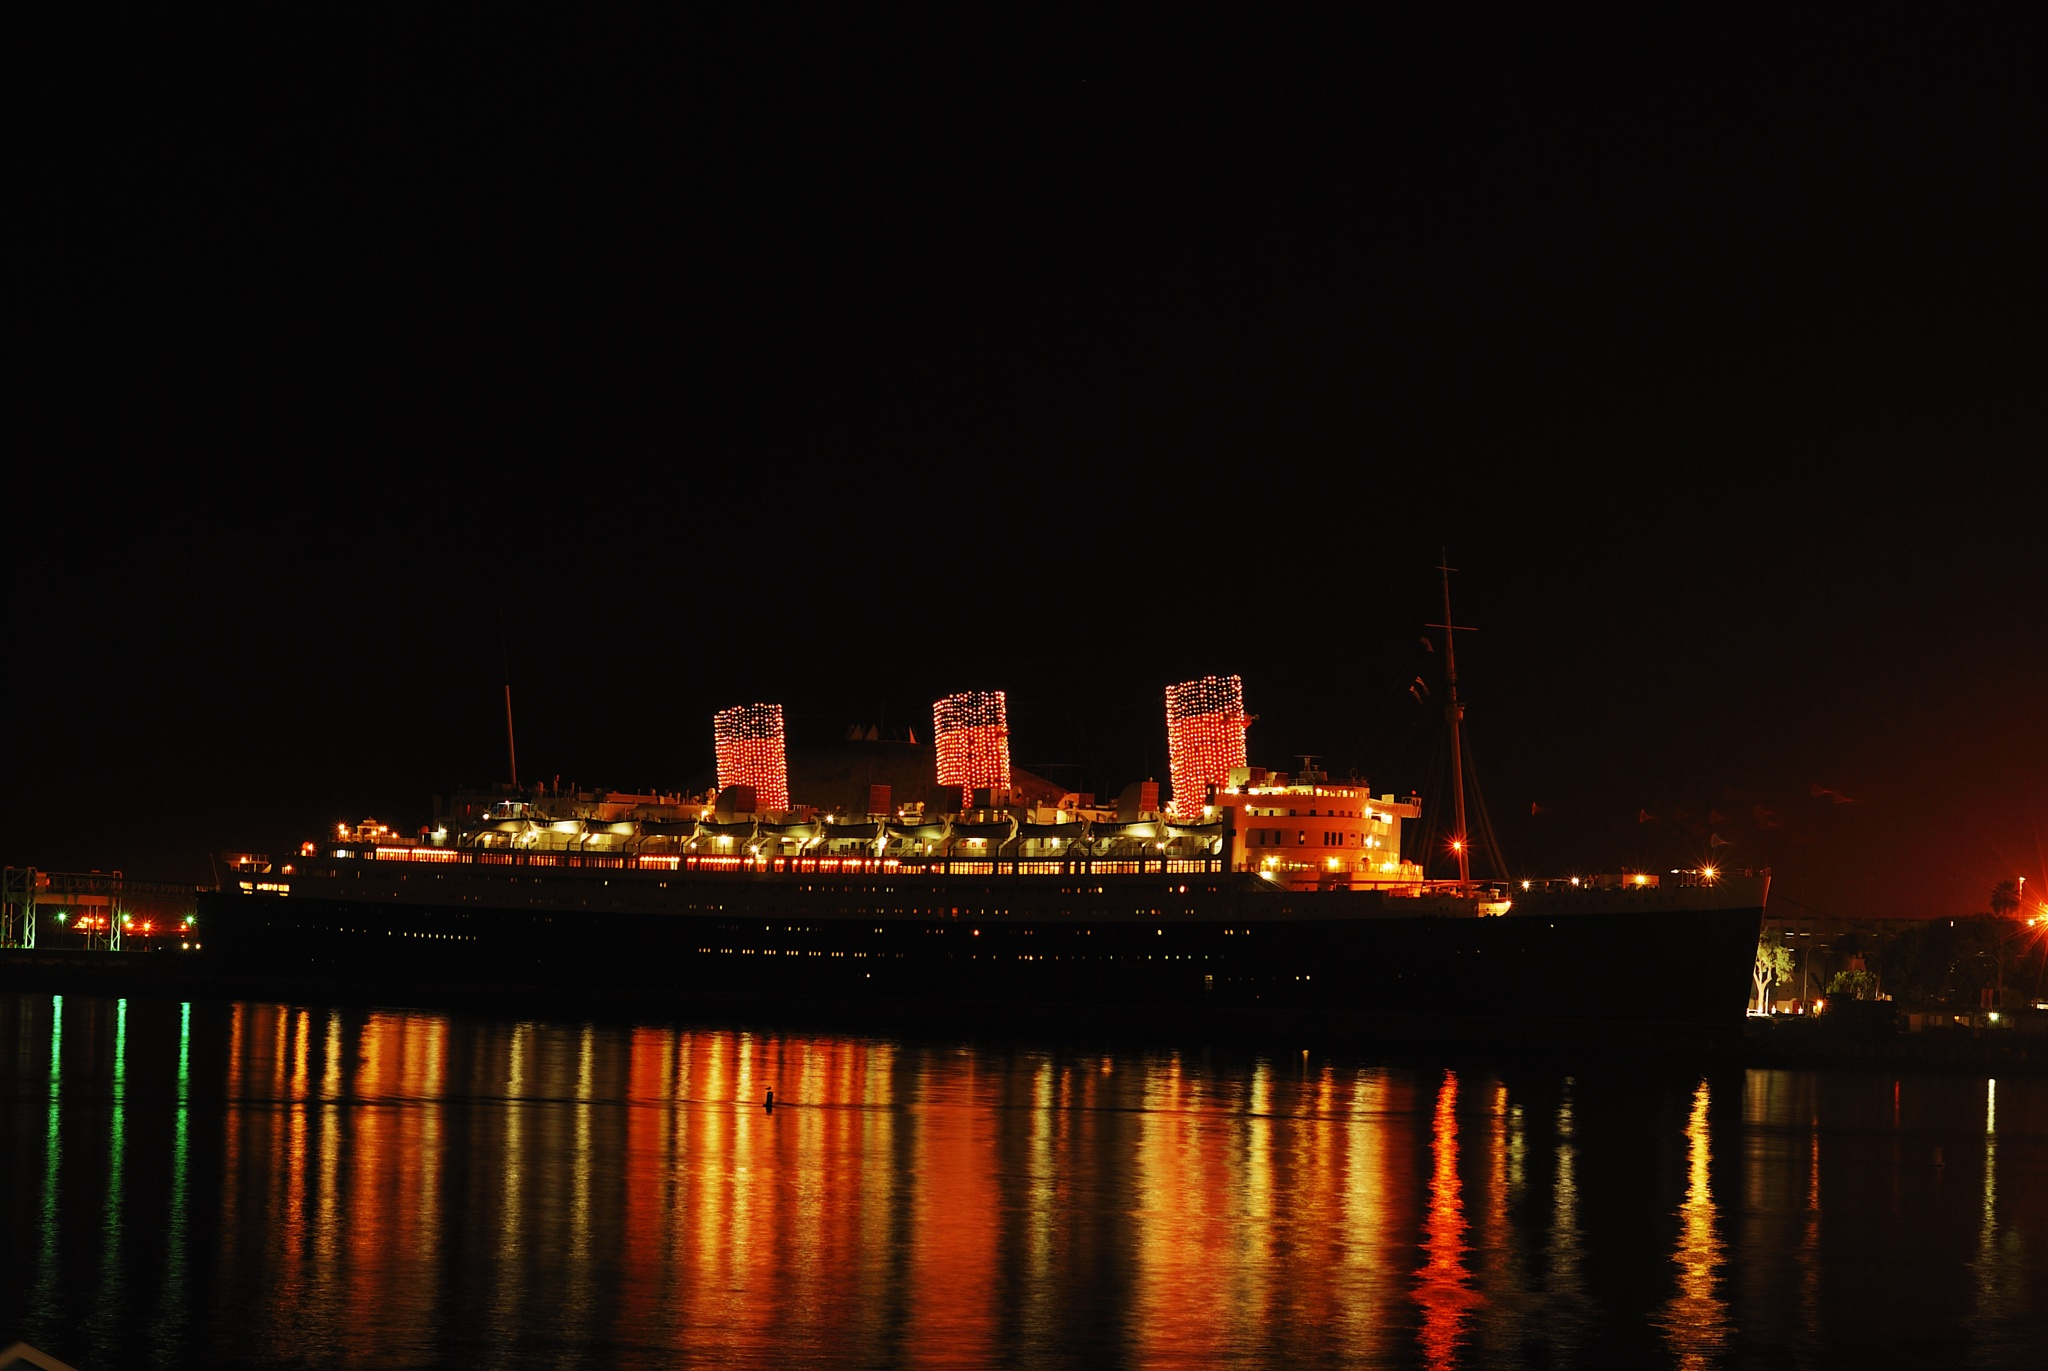 The Queen Mary  by Rogelio Flores